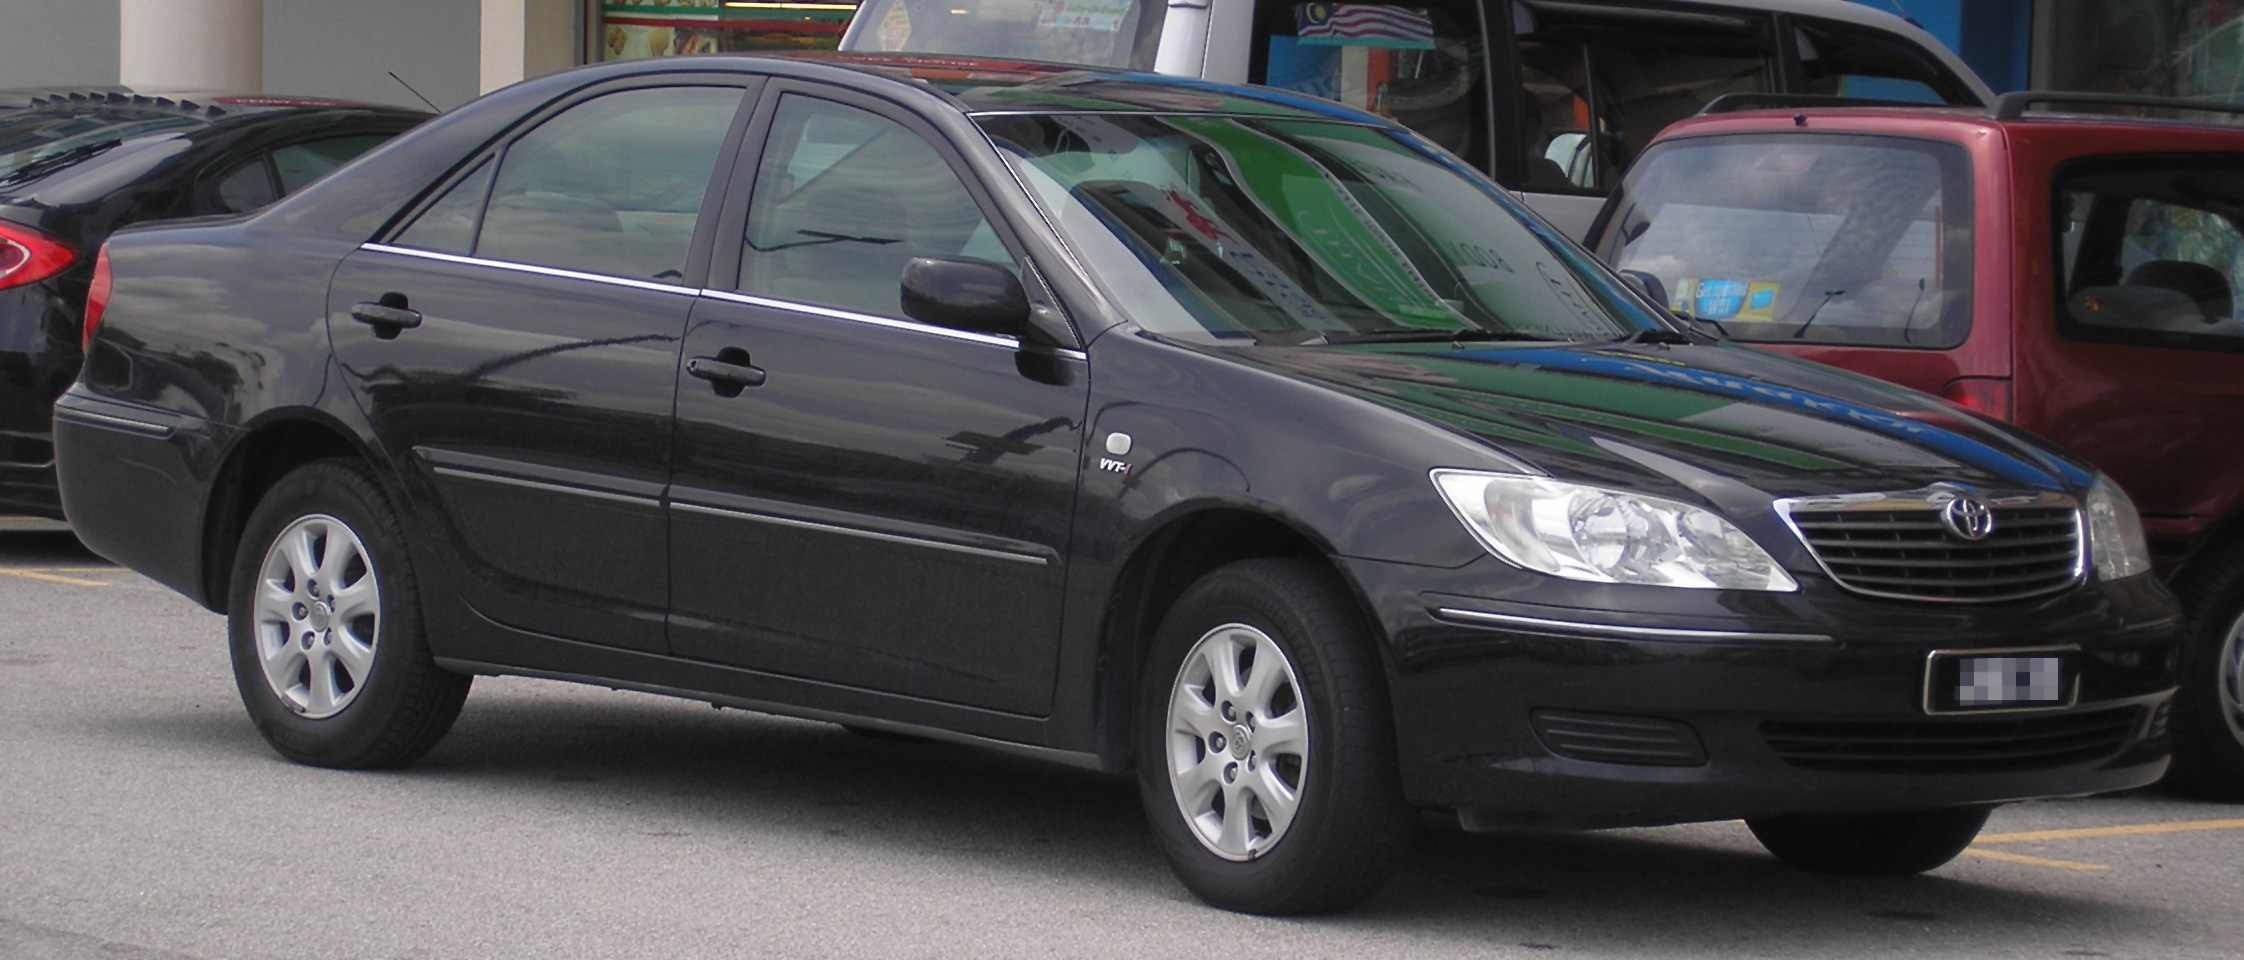 File:Toyota Camry (fifth generation) (front), Serdang.jpg ...